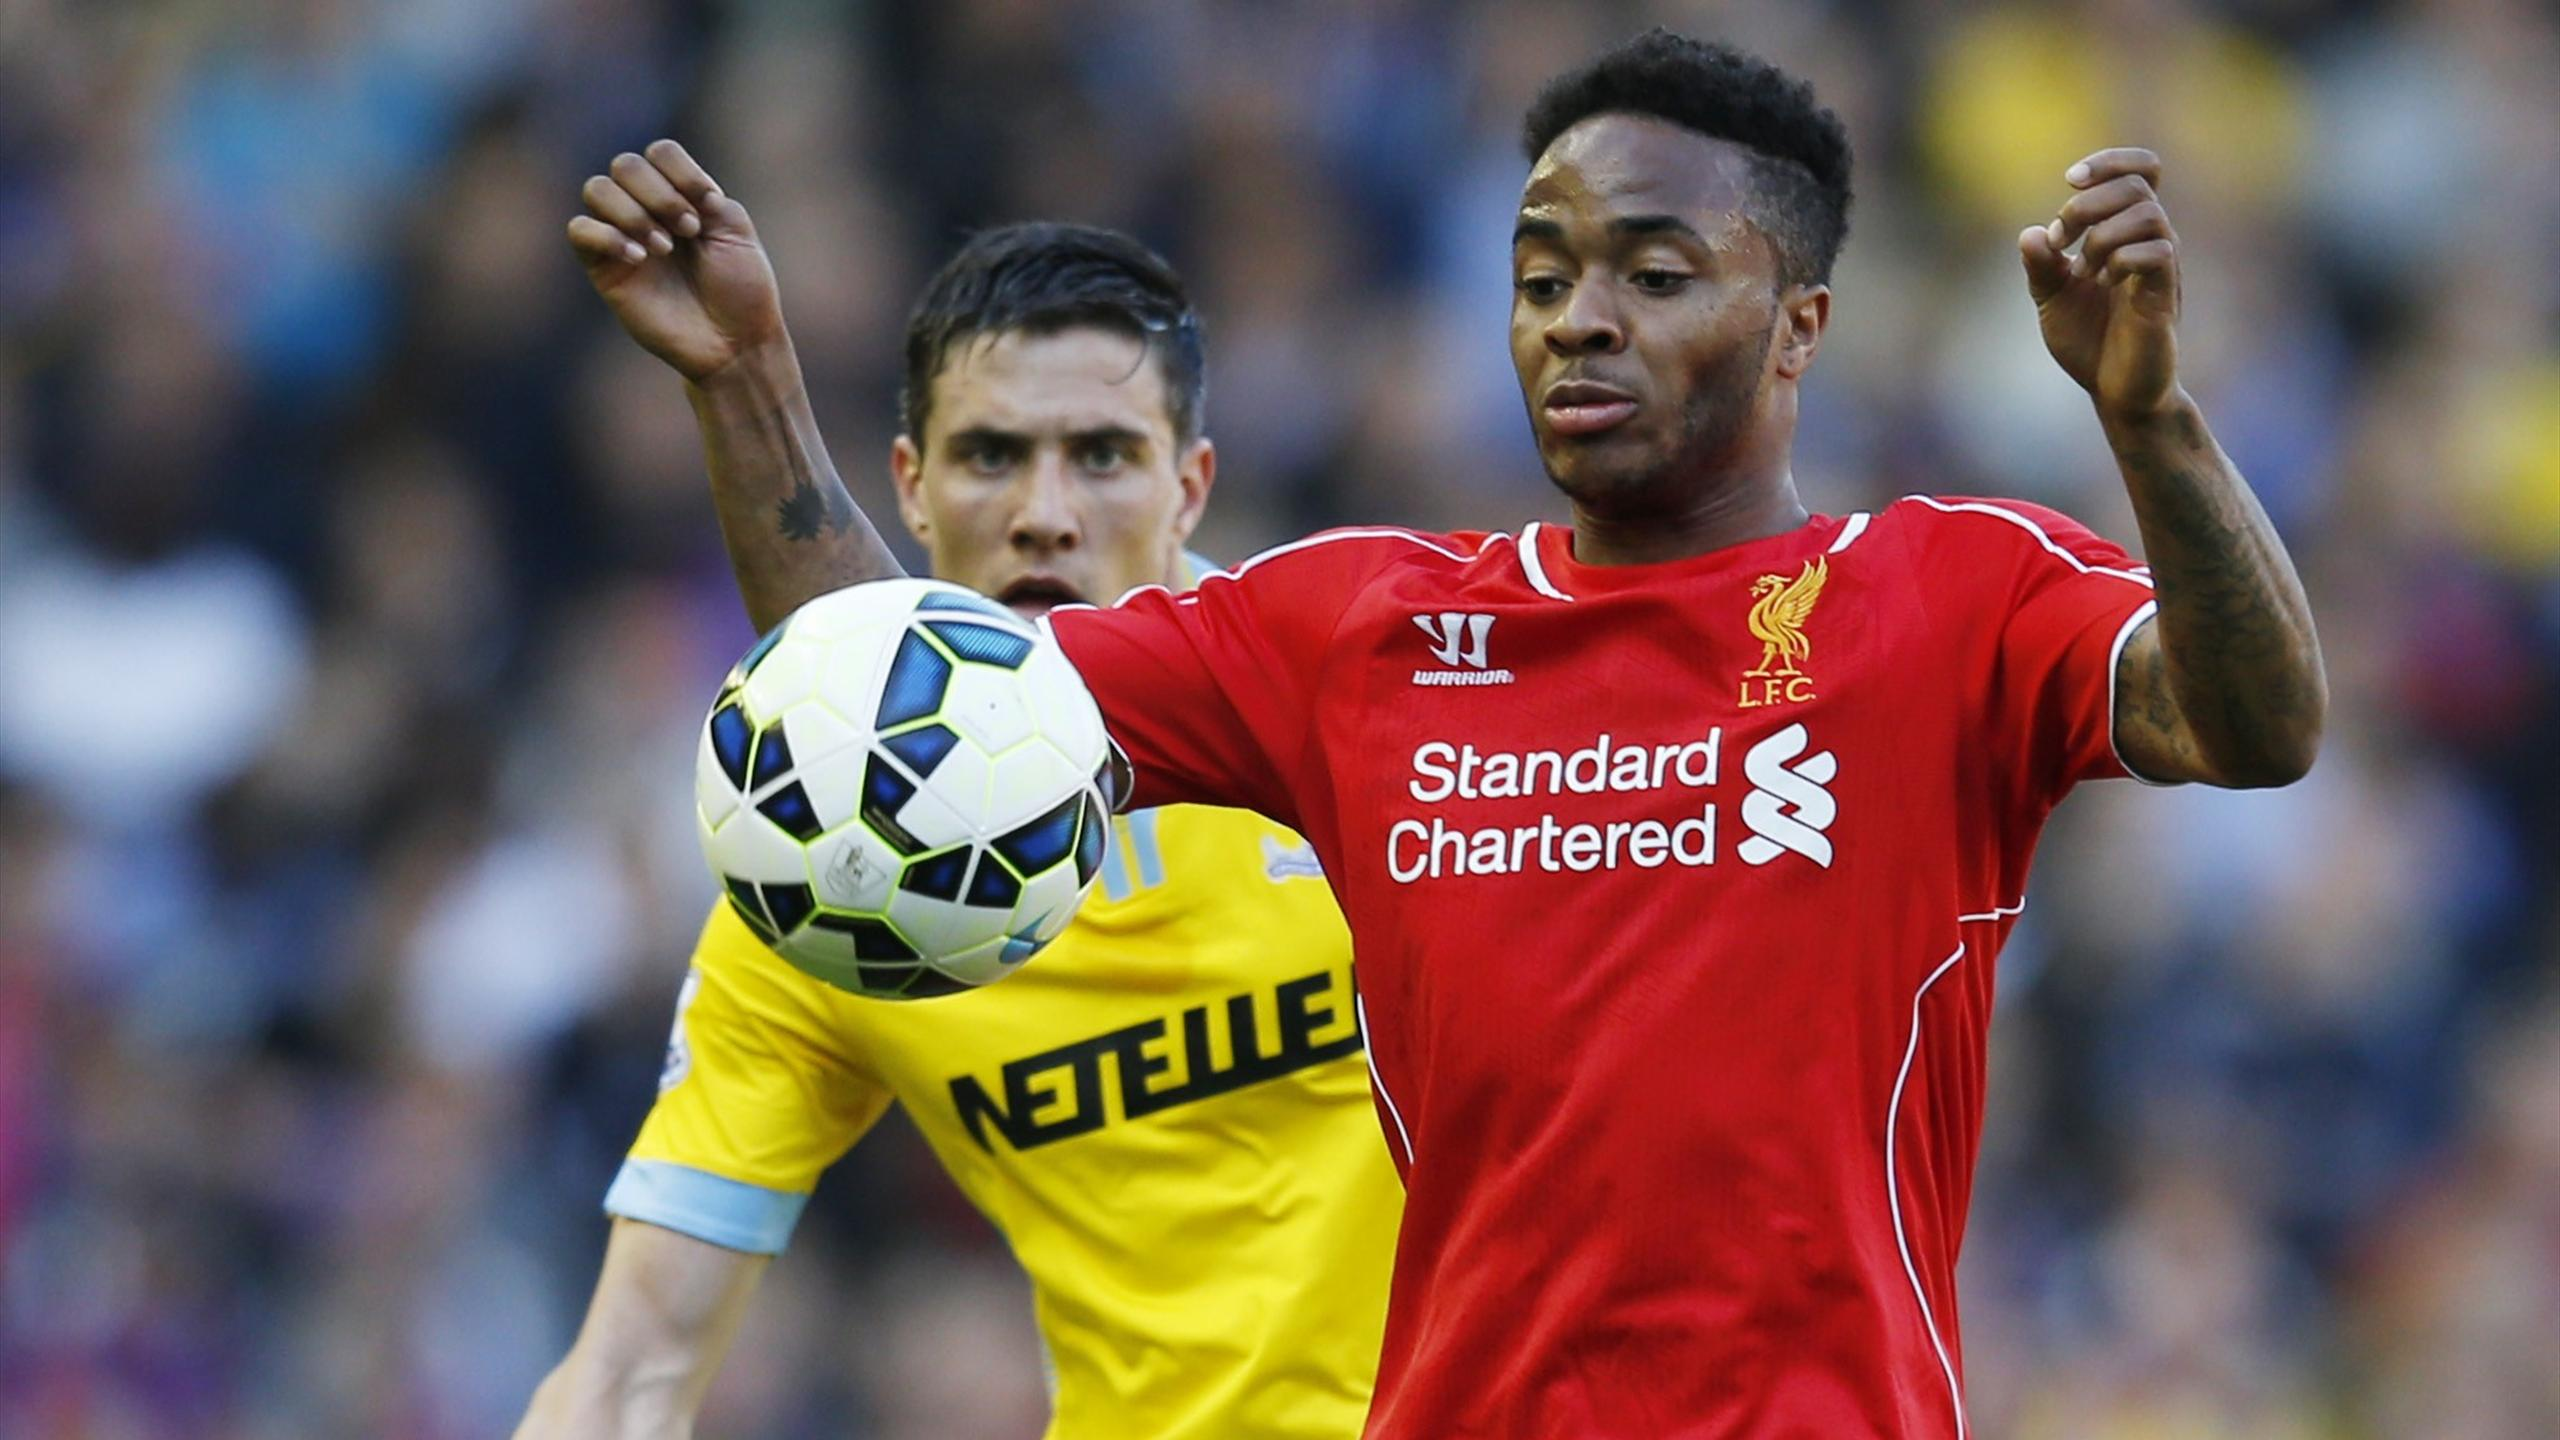 Crystal Palace's Martin Kelly in action with Liverpool's Raheem Sterling